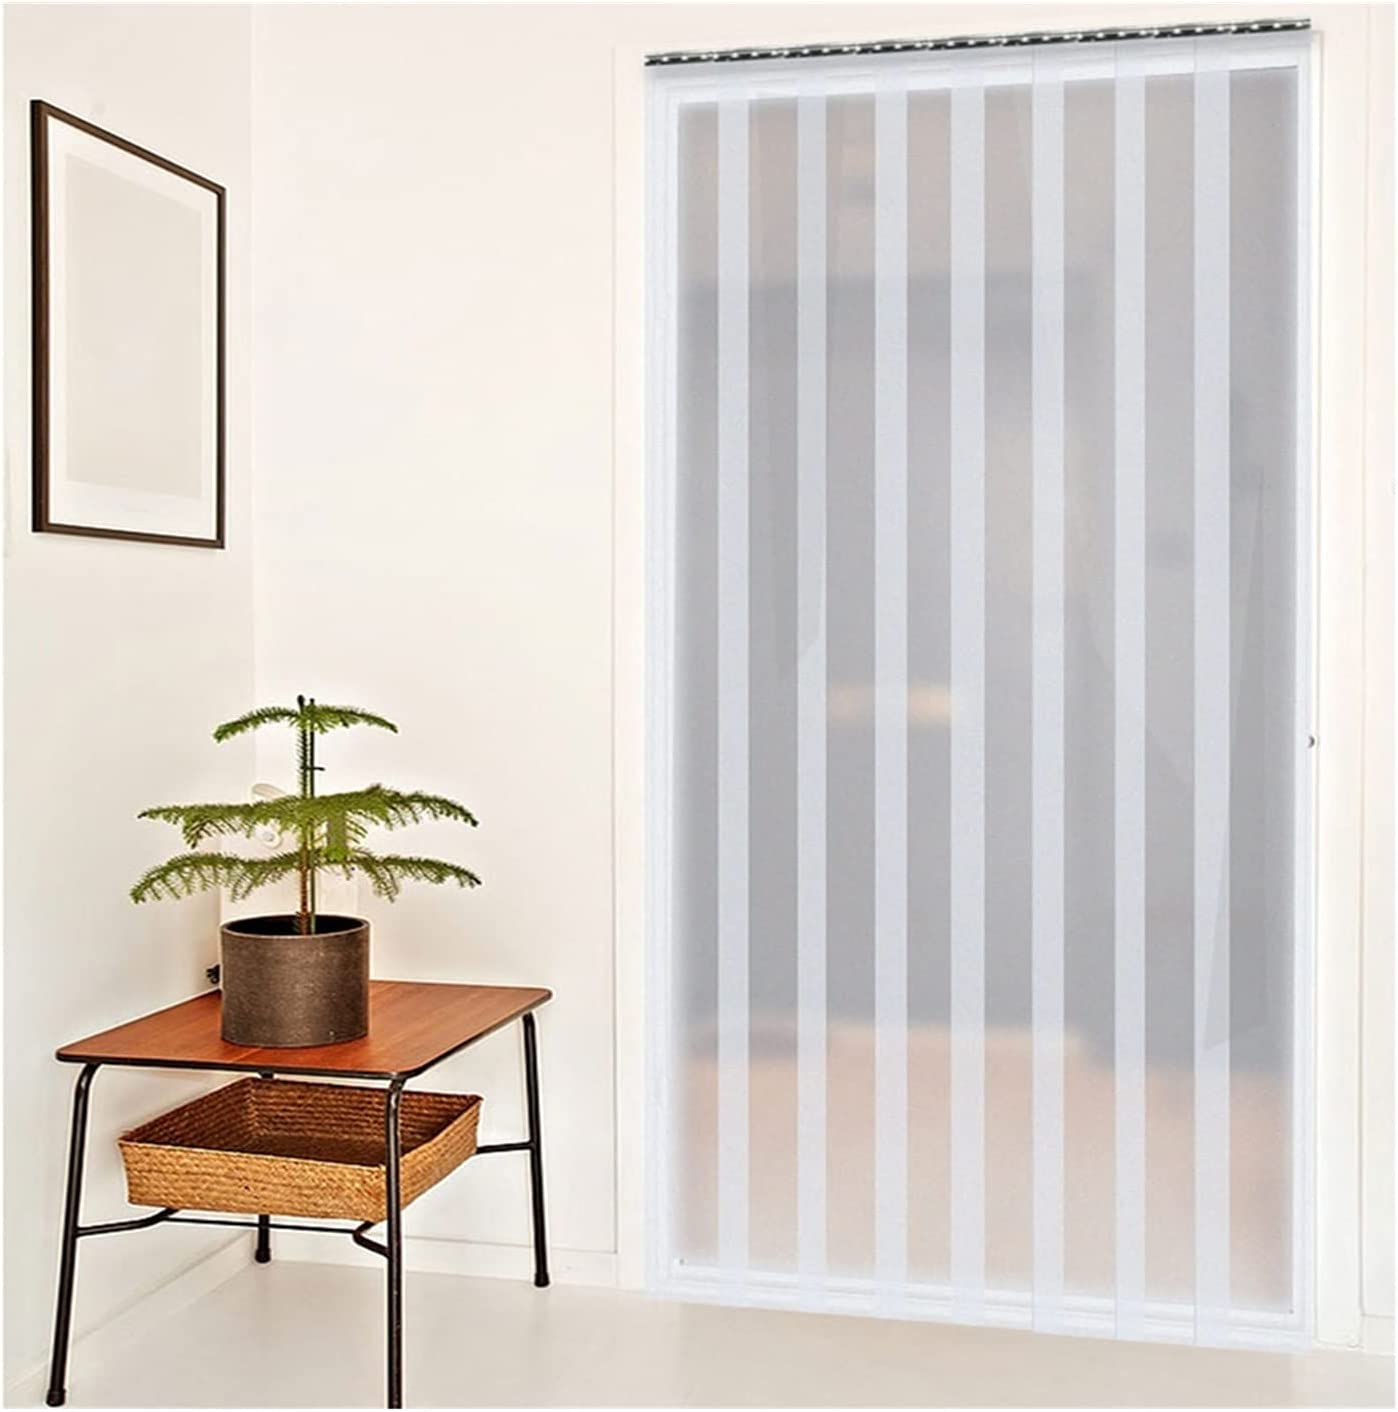 GGYMEI Deluxe PVC Strip Curtain Vertical Door Blinds Freezer Free shipping on posting reviews Do Strips